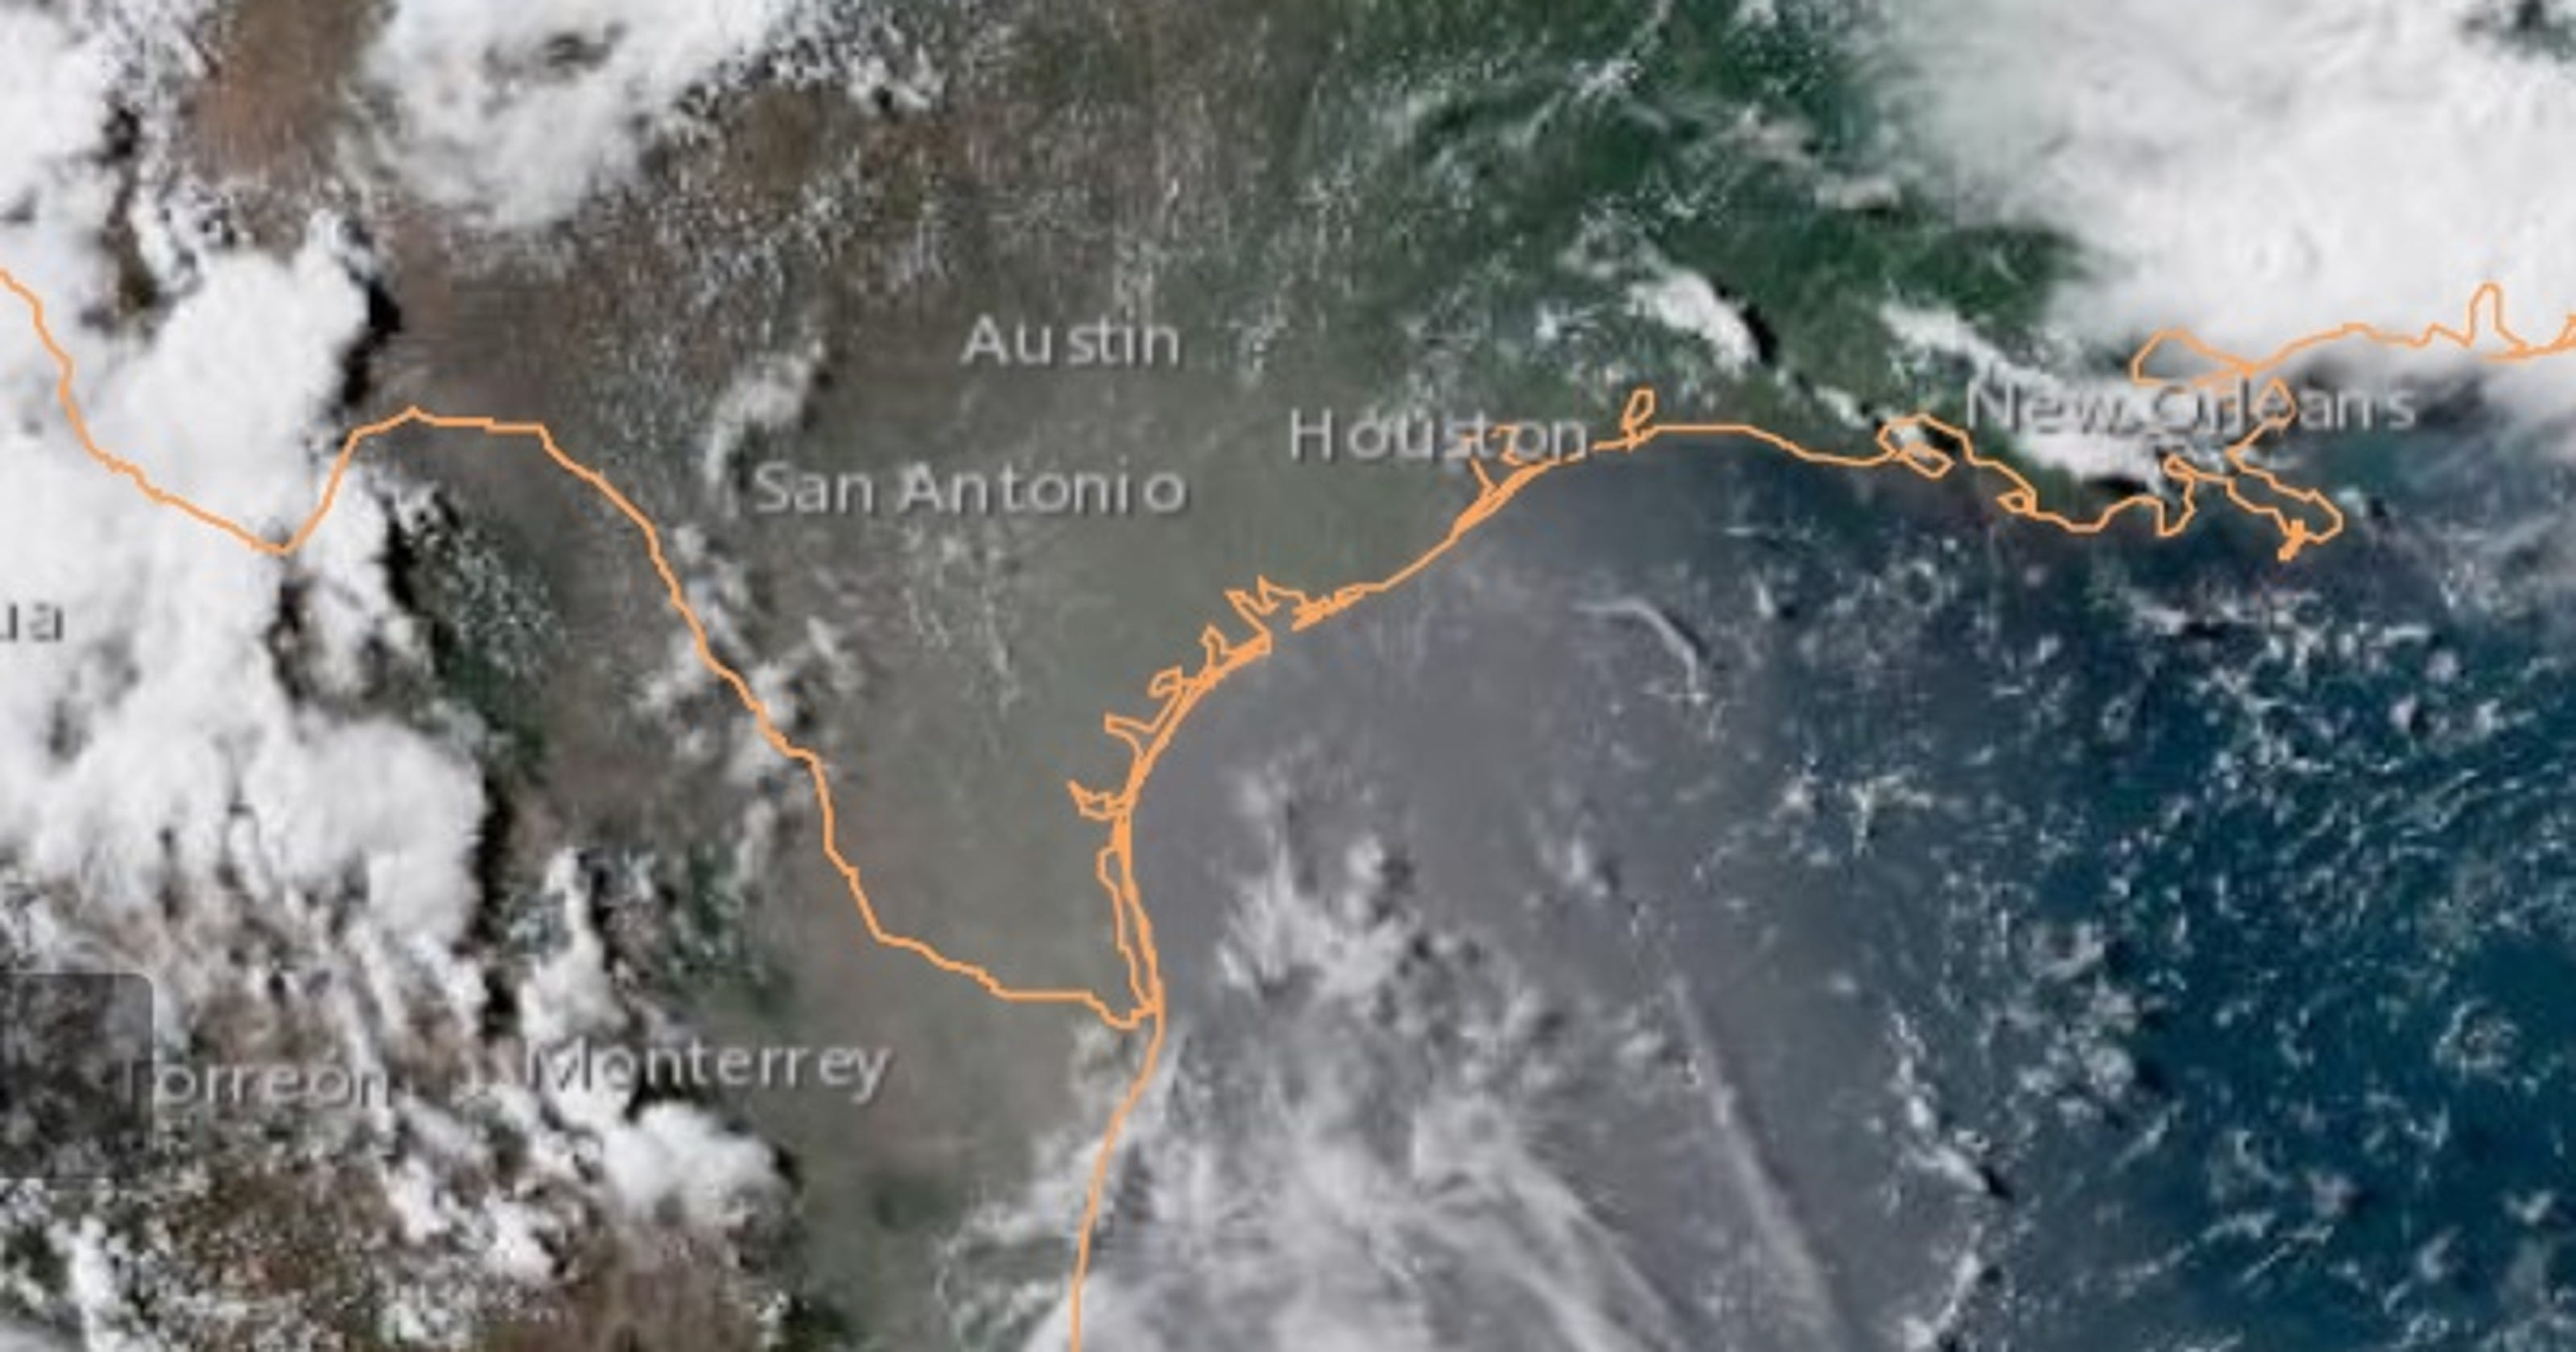 Sahara dust adding to heat misery in Texas this week